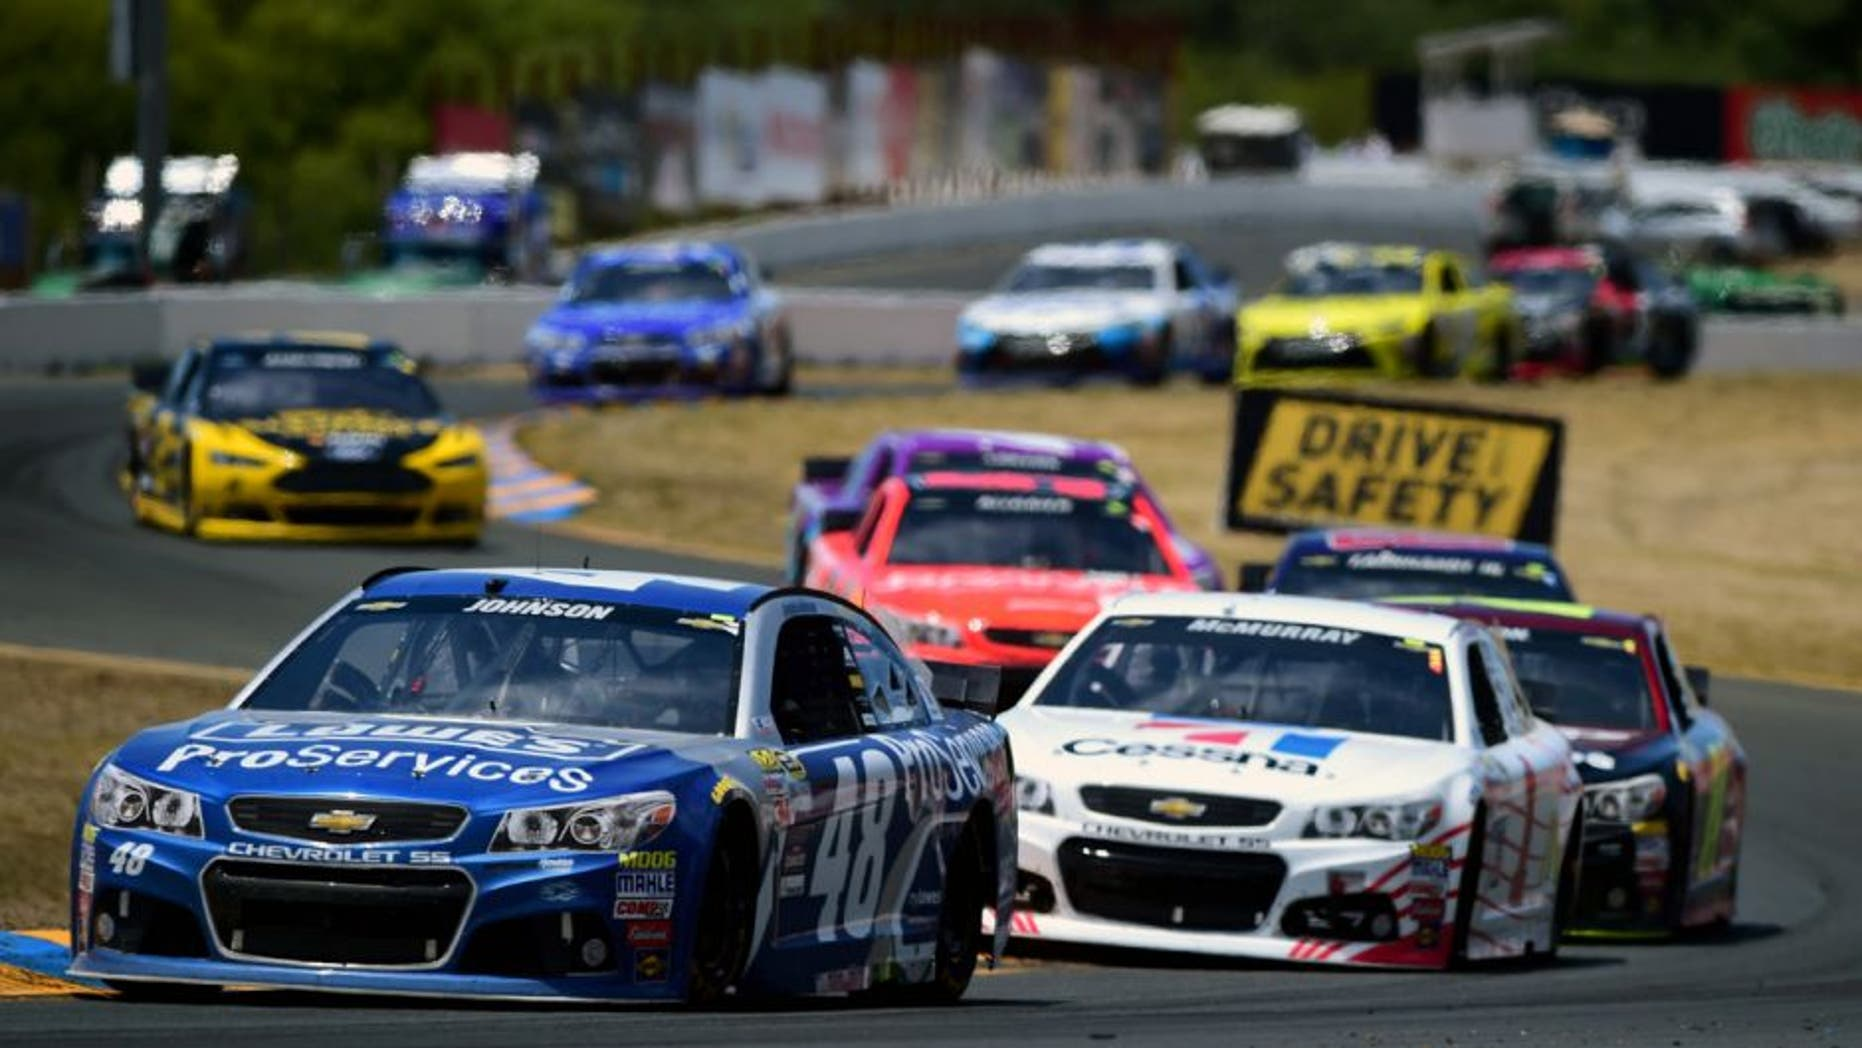 SONOMA, CA - JUNE 28: Jimmie Johnson, driver of the #48 Lowe's Pro Services Chevrolet, leads a pack of cars during the NASCAR Sprint Cup Series Toyota/Save Mart 350 at Sonoma Raceway on June 28, 2015 in Sonoma, California. (Photo by Jared C. Tilton/Getty Images)